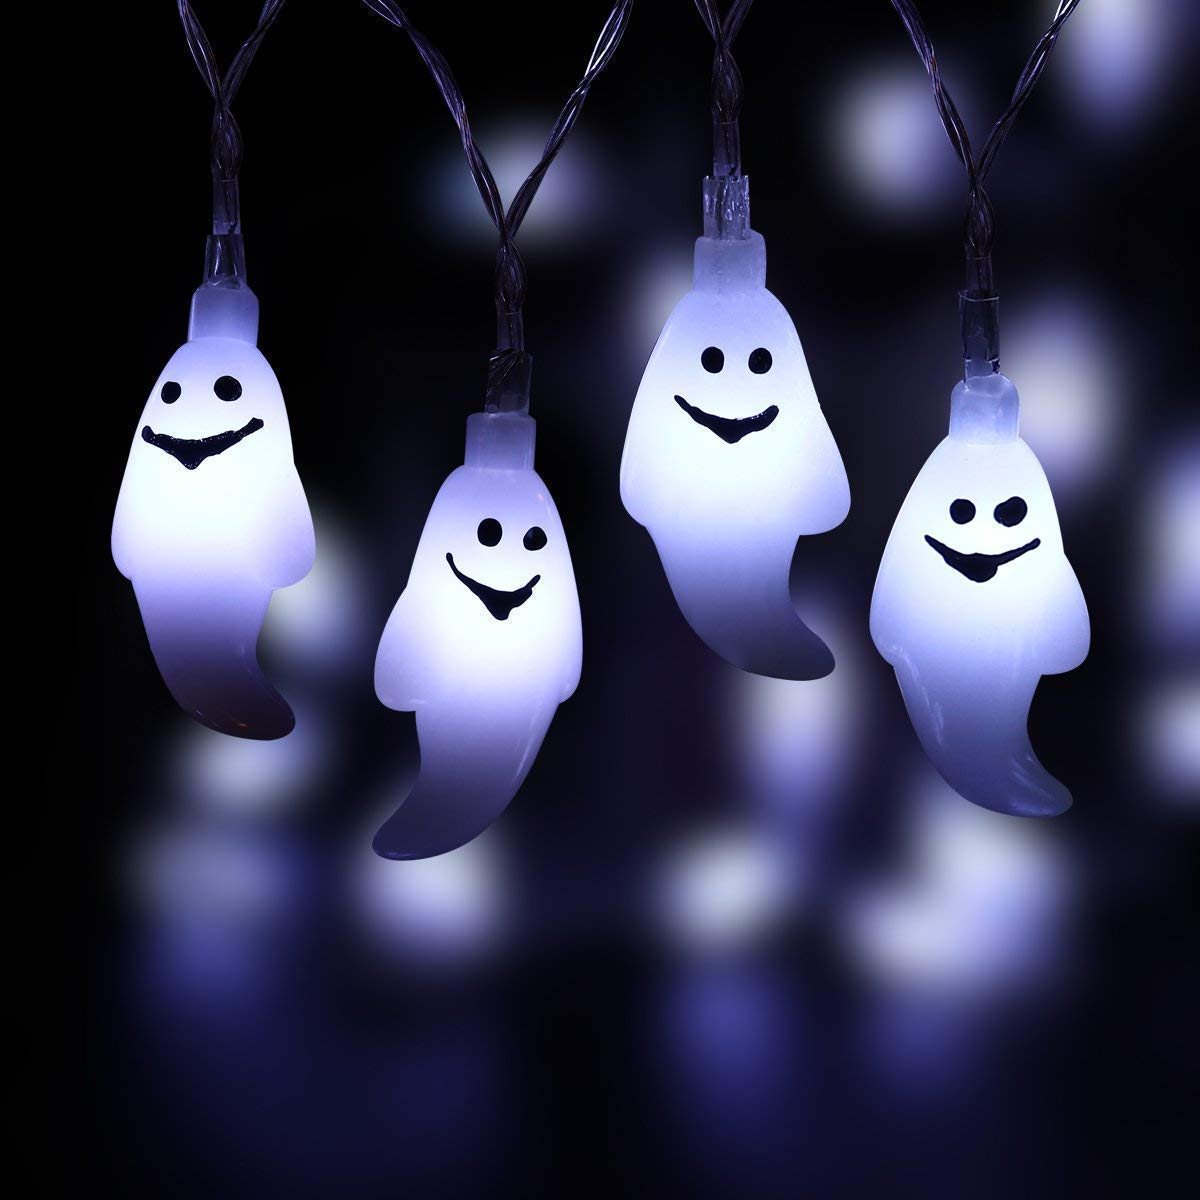 W-ShiG Halloween Ghost String Lights,30 LEDs Ghost Solar Power String Lights for Indoor Outdoor Halloween Decoration